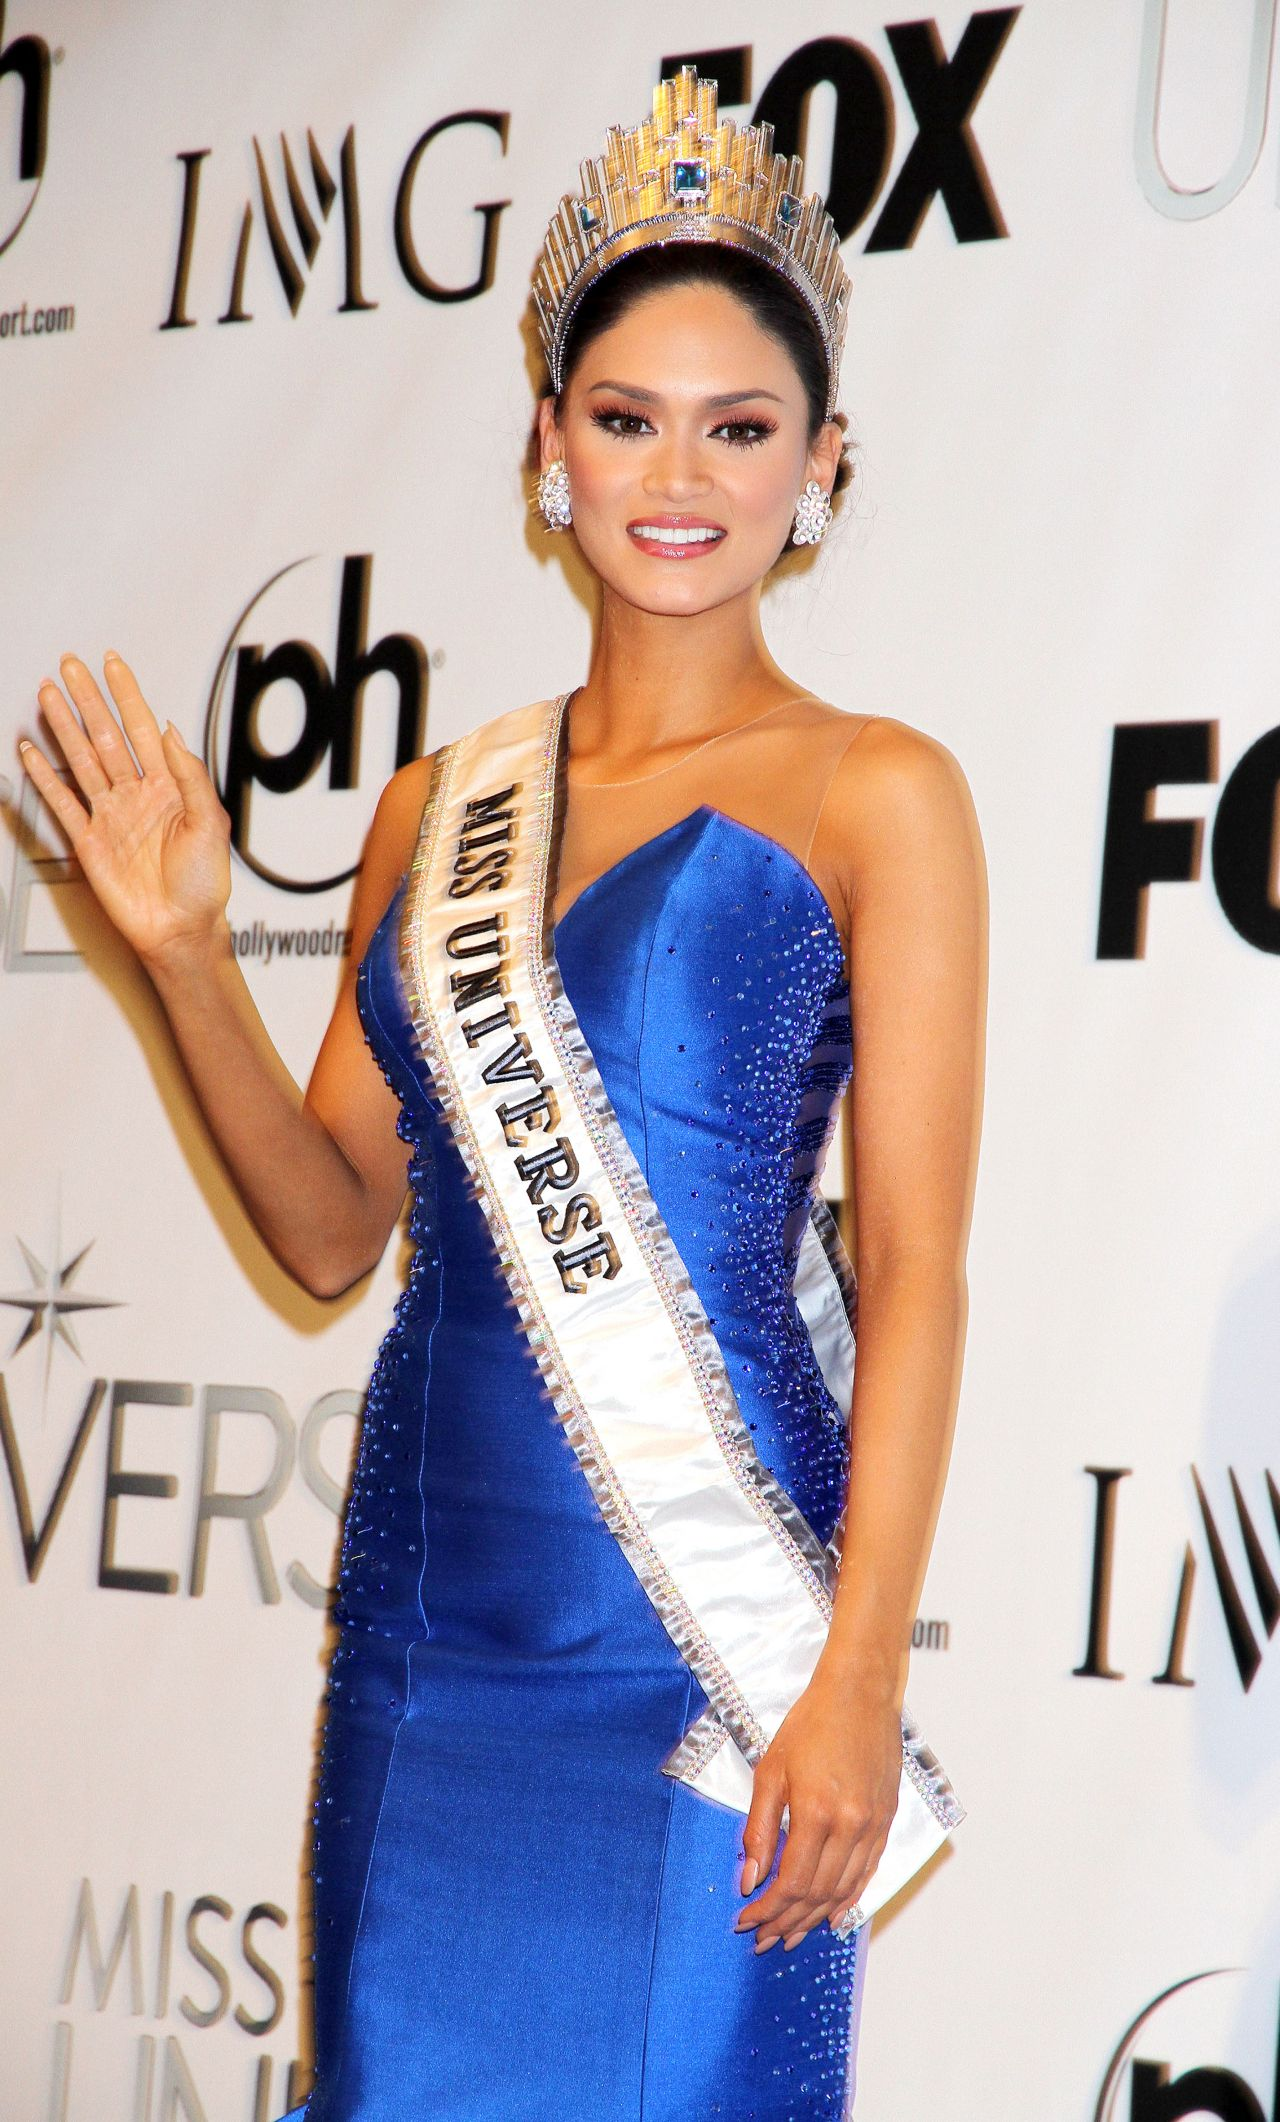 Miss Universe 2017 Price >> Pia Alonzo Wurtzbach - Miss Universe 2015 Winner - Planet Hollywood Resort & Casino in Las Vegas